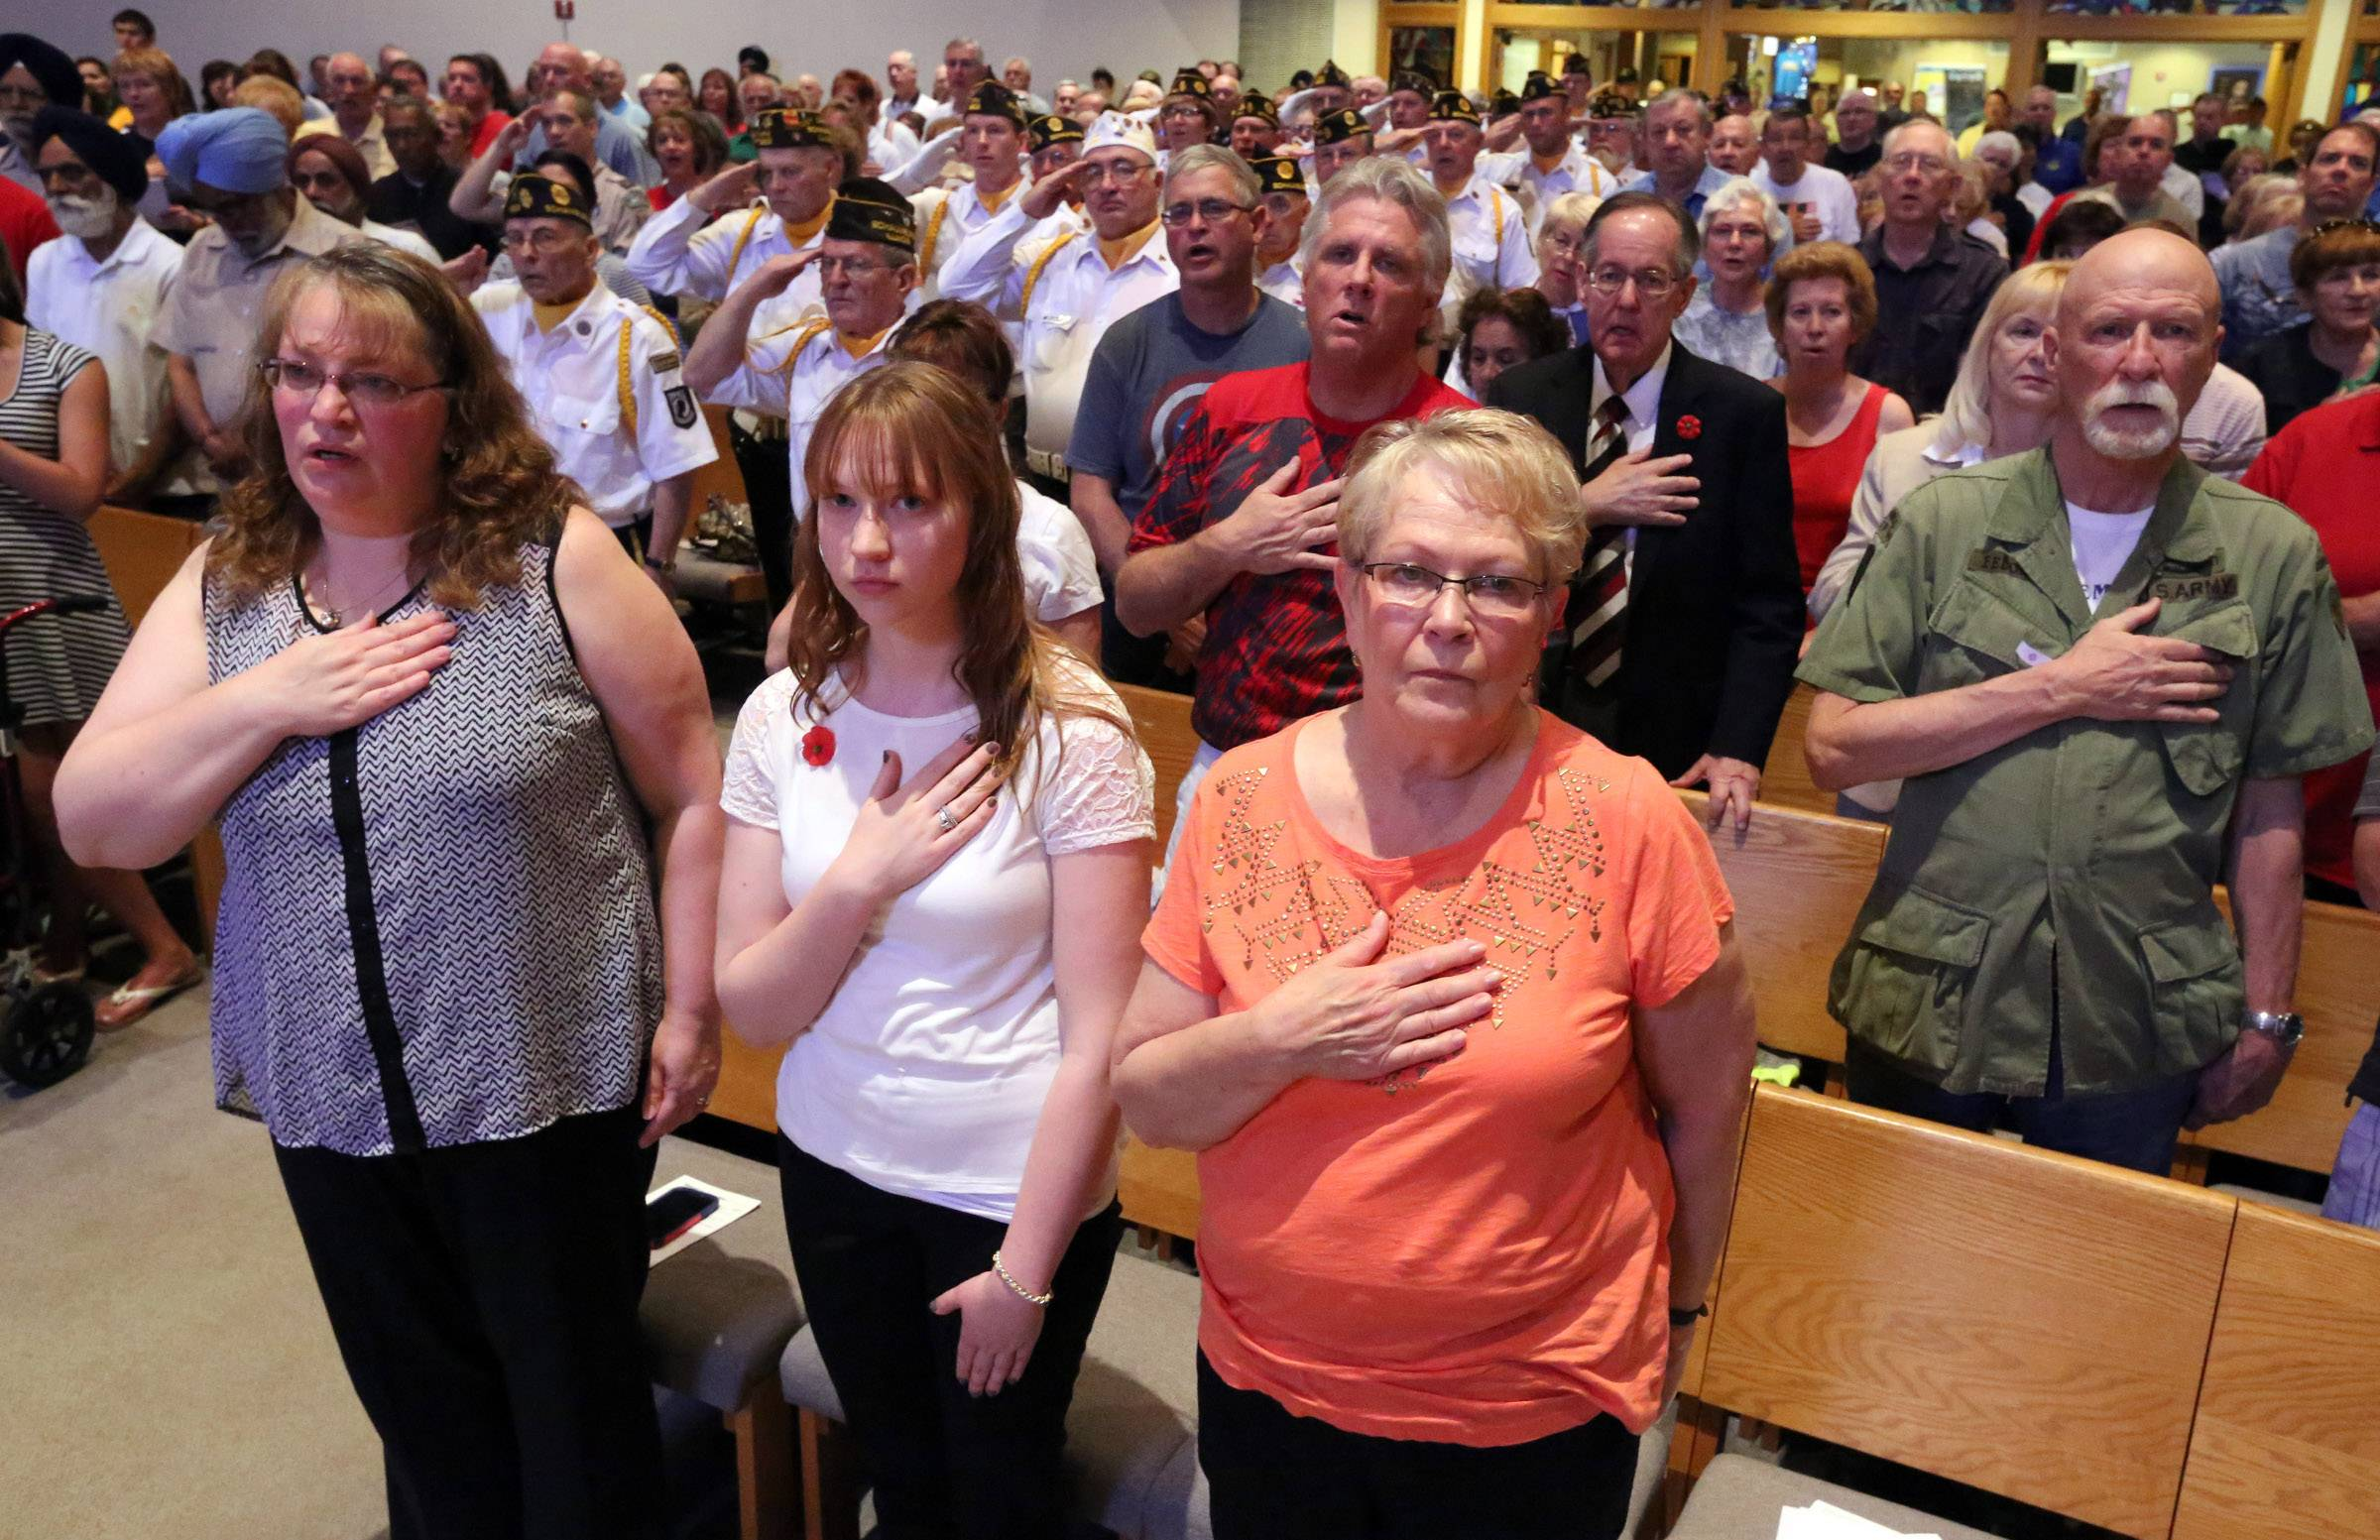 Attendees of a Memorial Day ceremony hold their hands on their hearts during the Pledge of Allegiance at St. Peter Lutheran Church in Schaumburg.